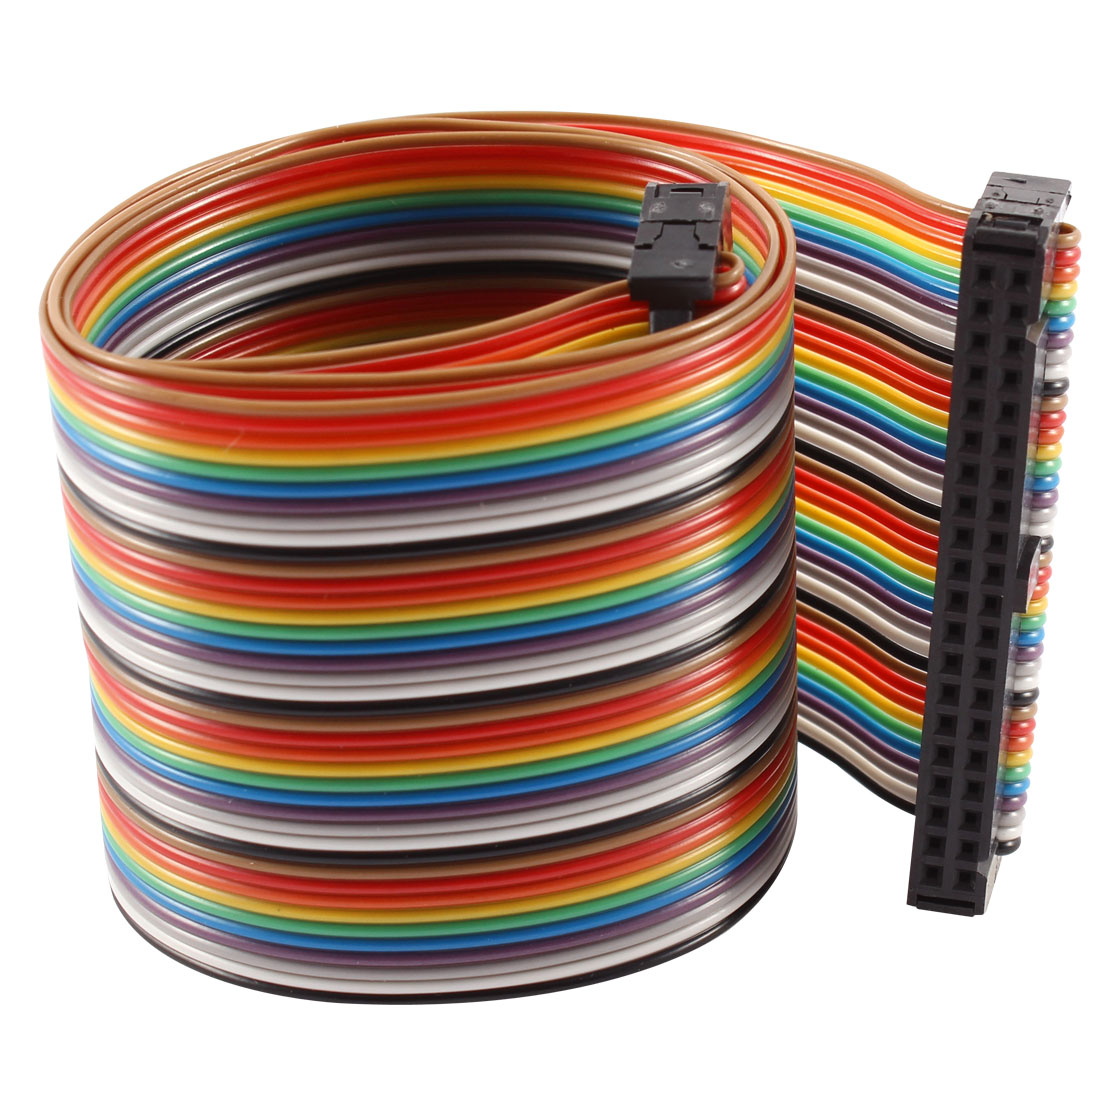 2.54mm Pitch 40 Pin 40 Way F/F Connector IDC Flat Rainbow Ribbon Cable 48cm